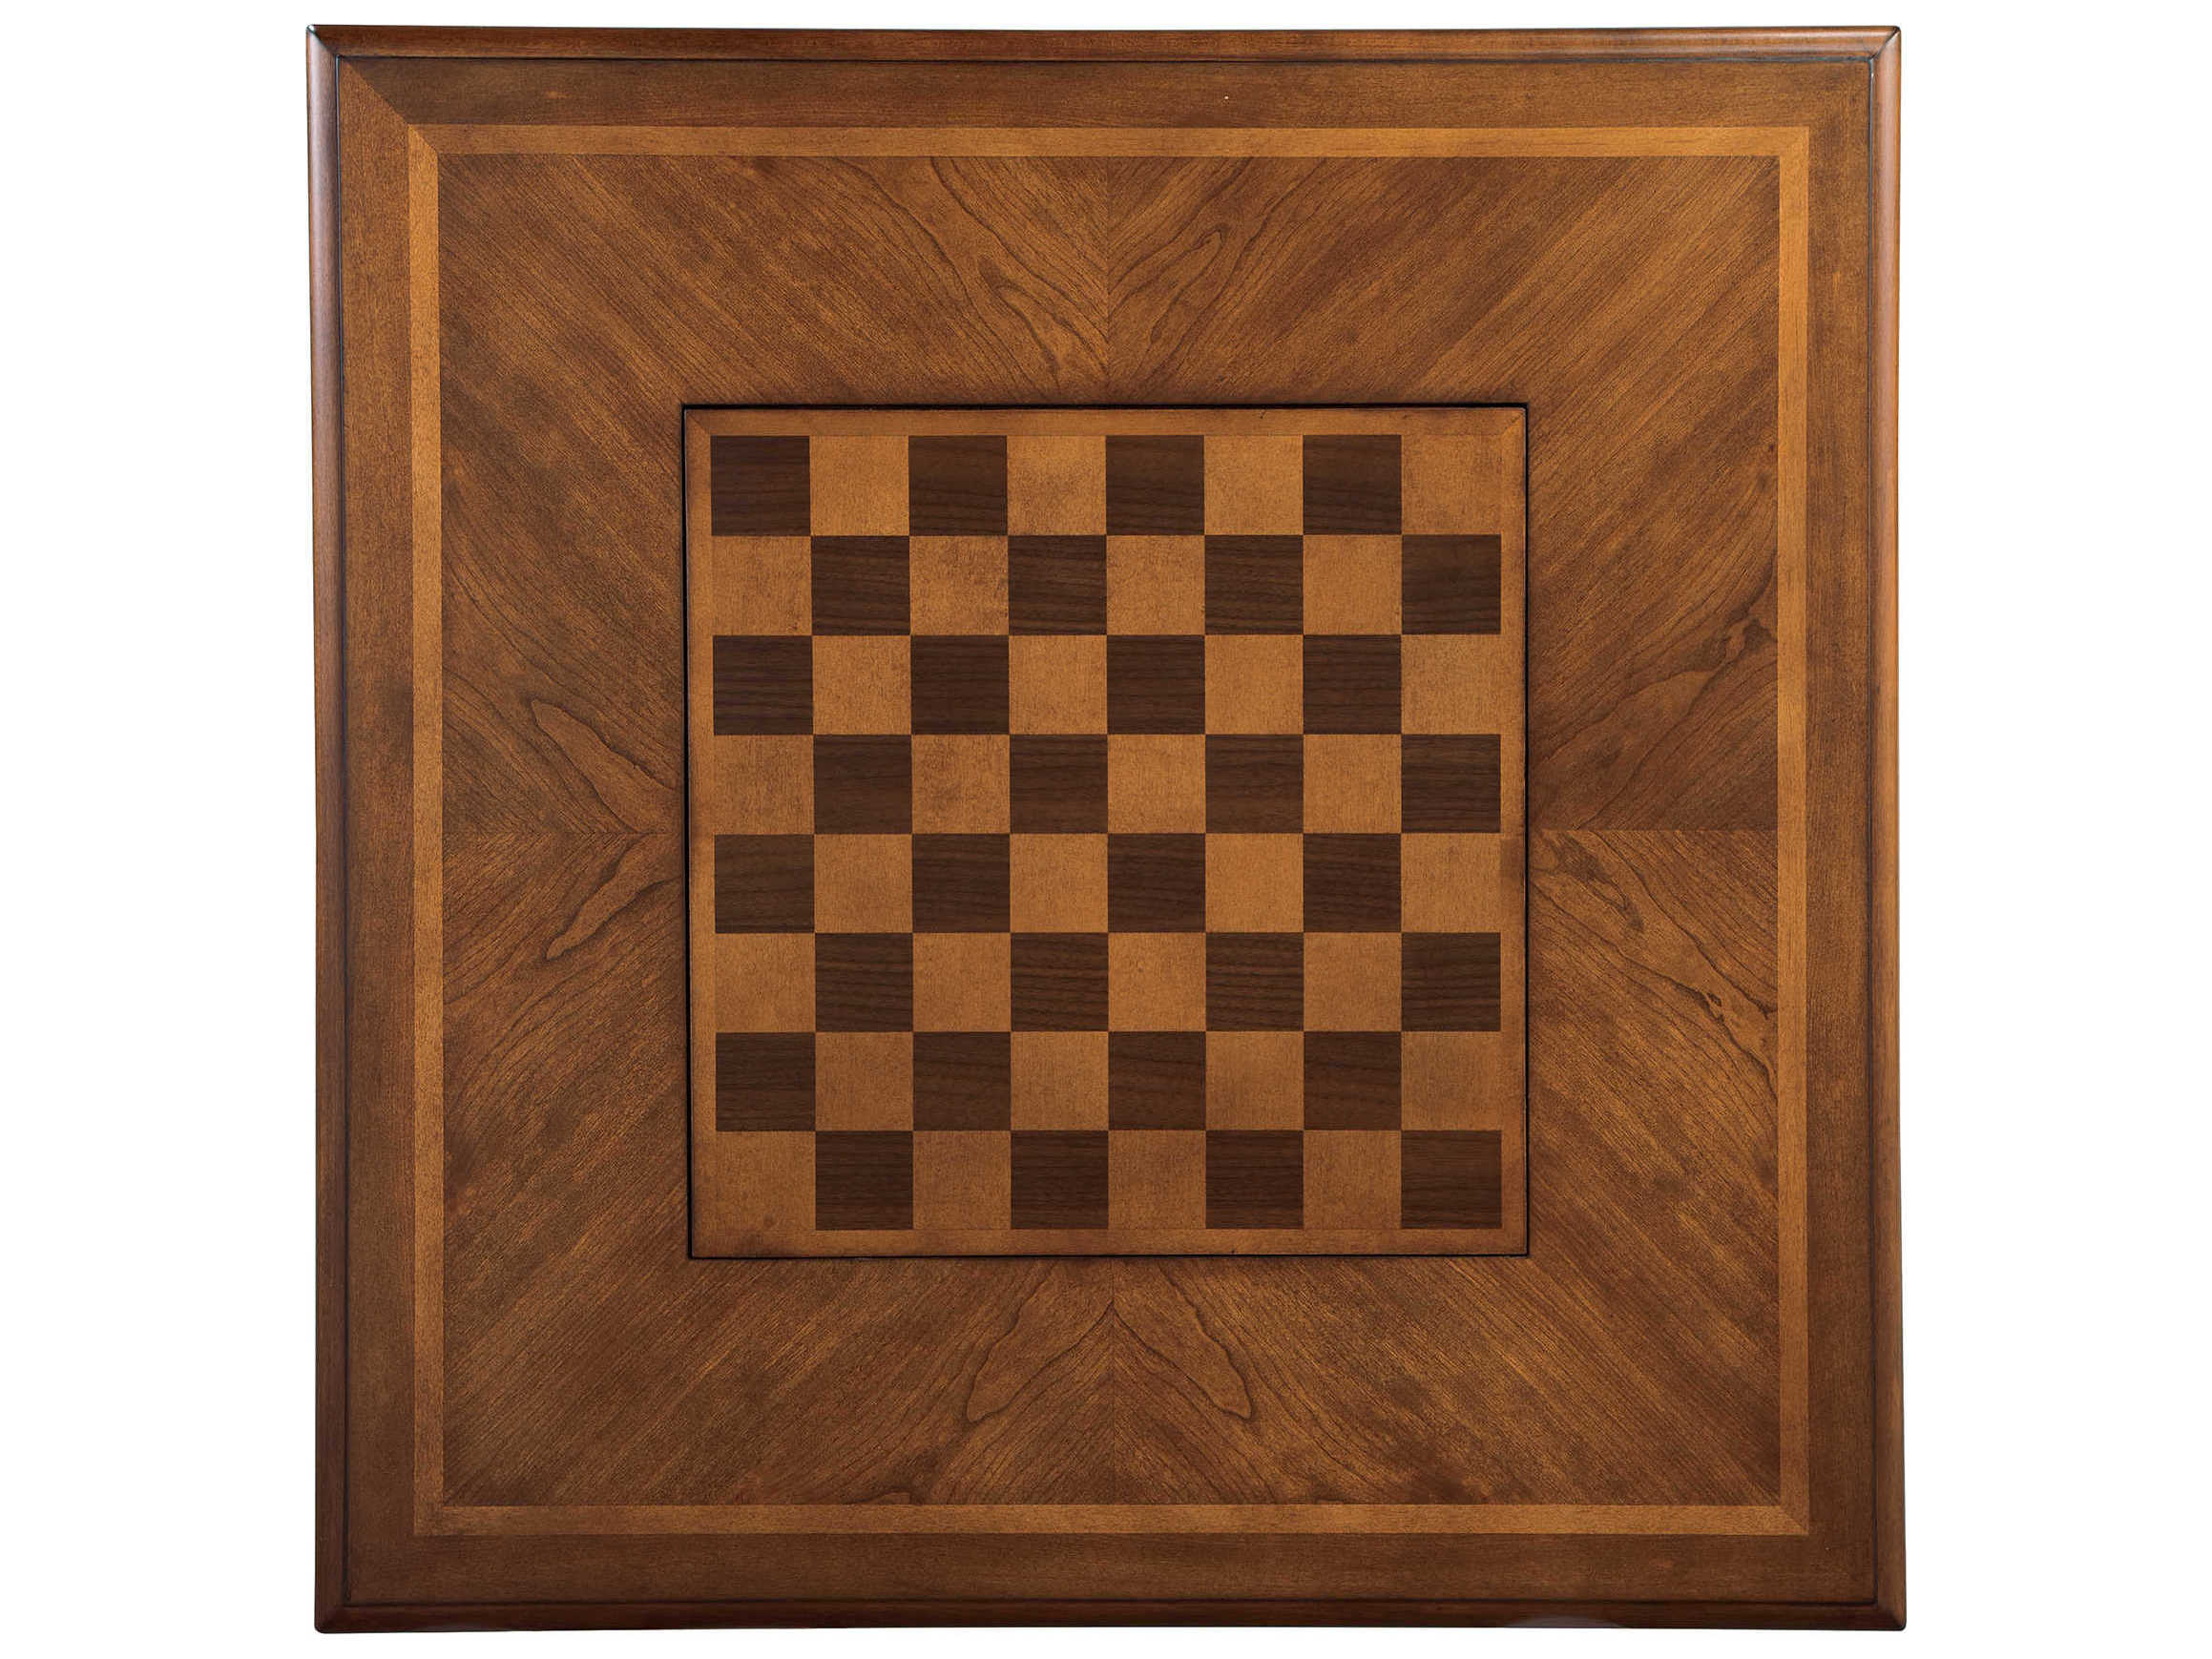 ... Hekman Accents Special Reserve 36u0027u0027 Square Game Table